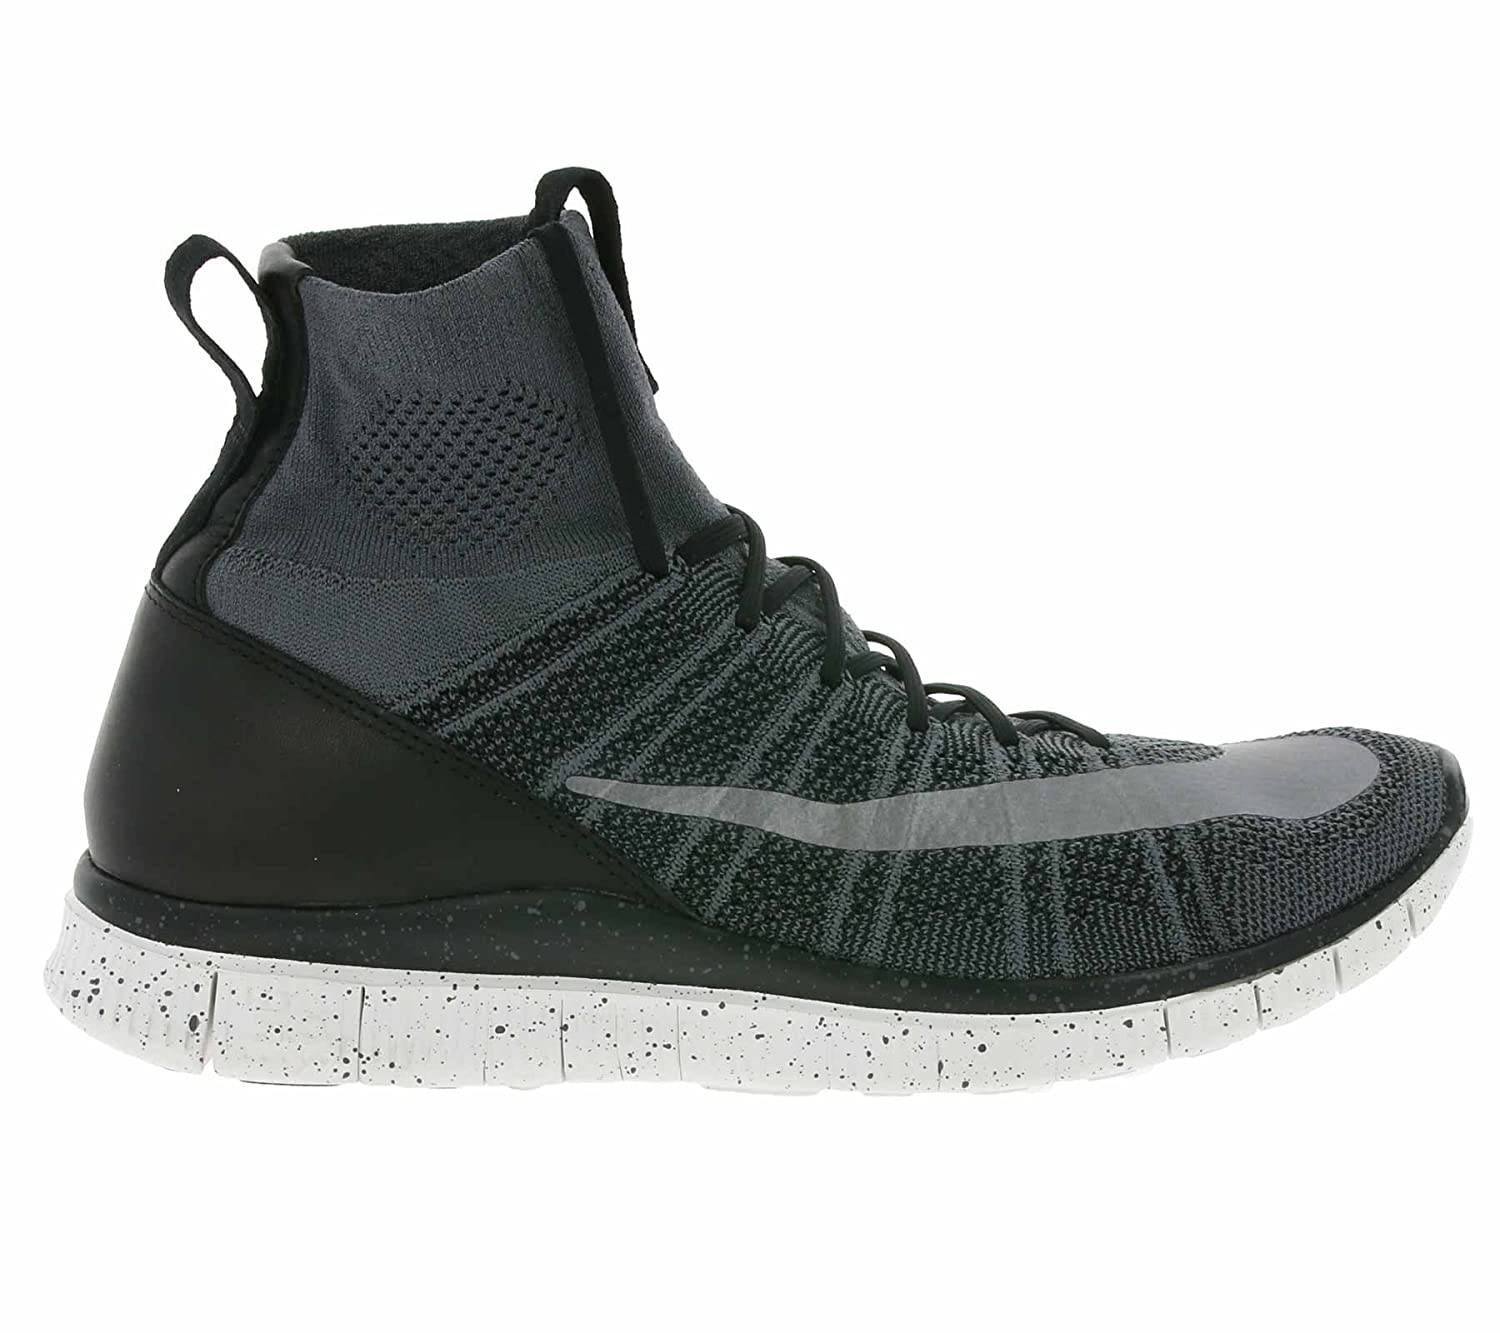 on sale 69879 373fa NIKE Free Flyknit Mercurial CR7 805554-004 Grey/Black/White/Silver Men's  Shoes (Size 10)